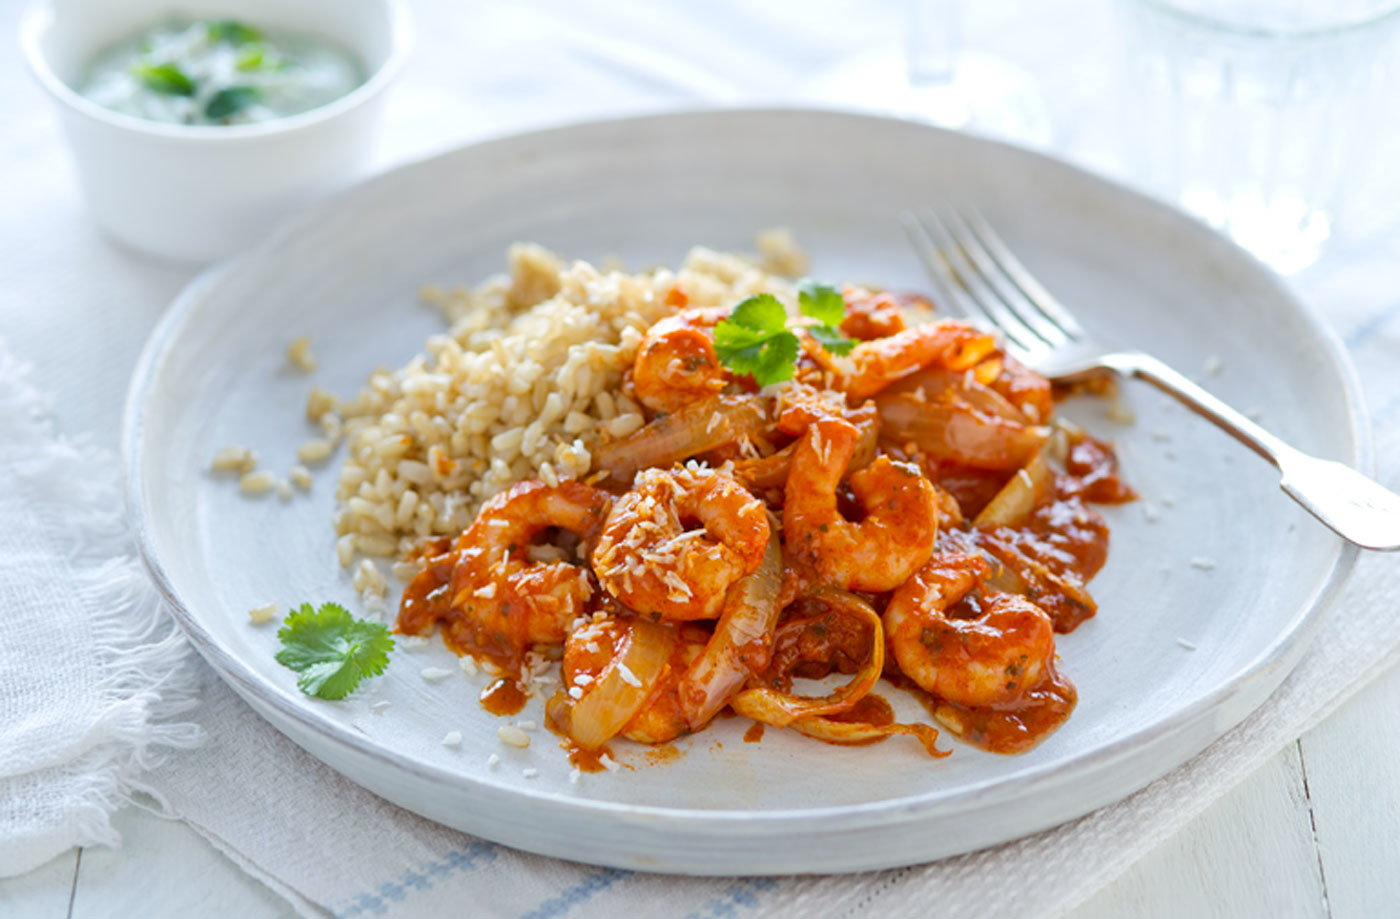 Healthy living recipes low fat healthy food tesco real food healthy living prawn tikka masala forumfinder Gallery